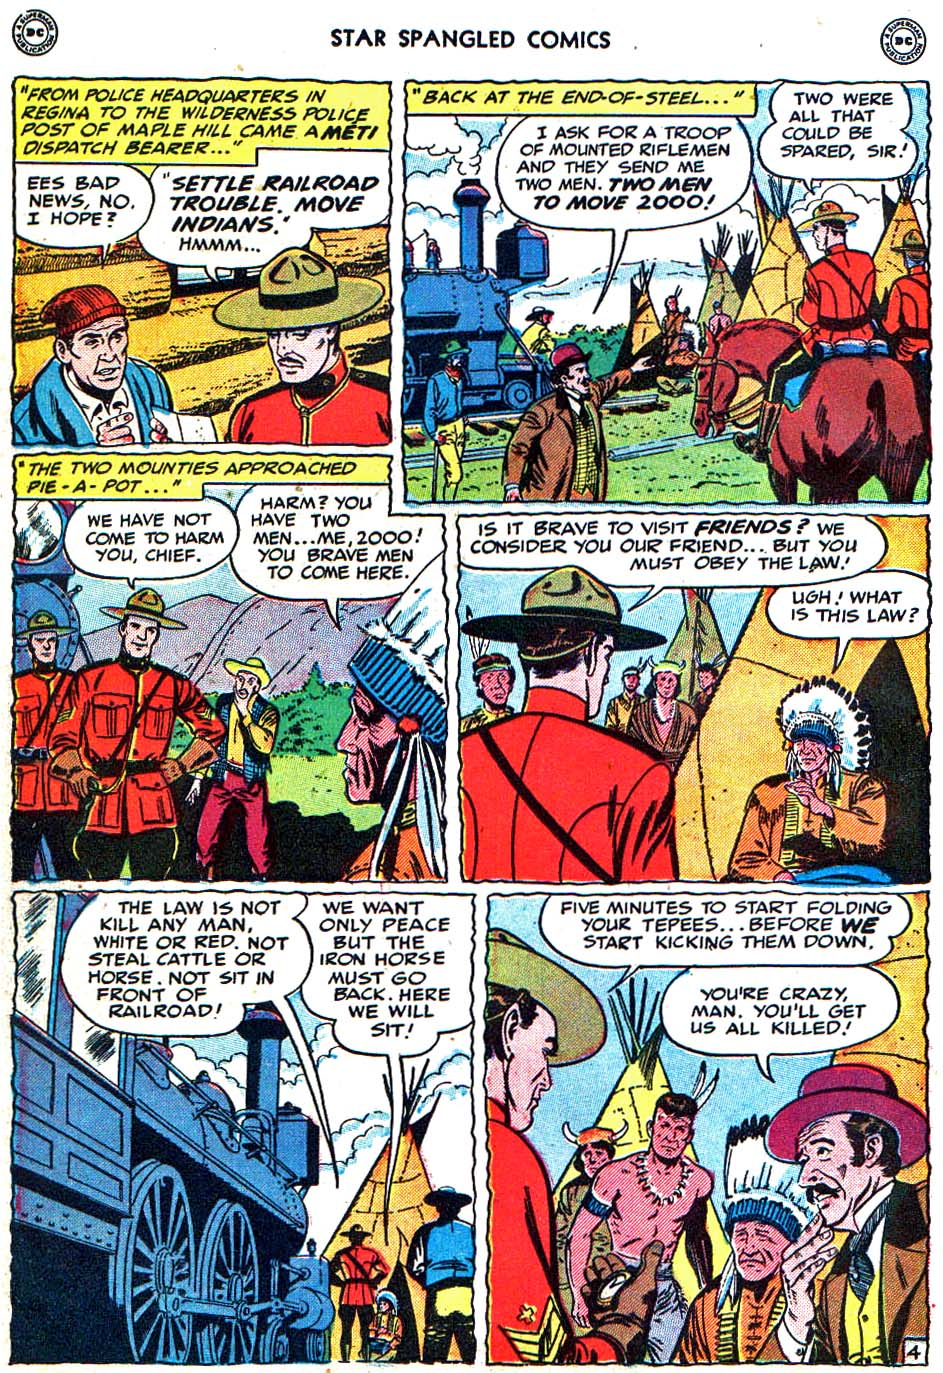 Star Spangled Comics (1941) issue 95 - Page 20